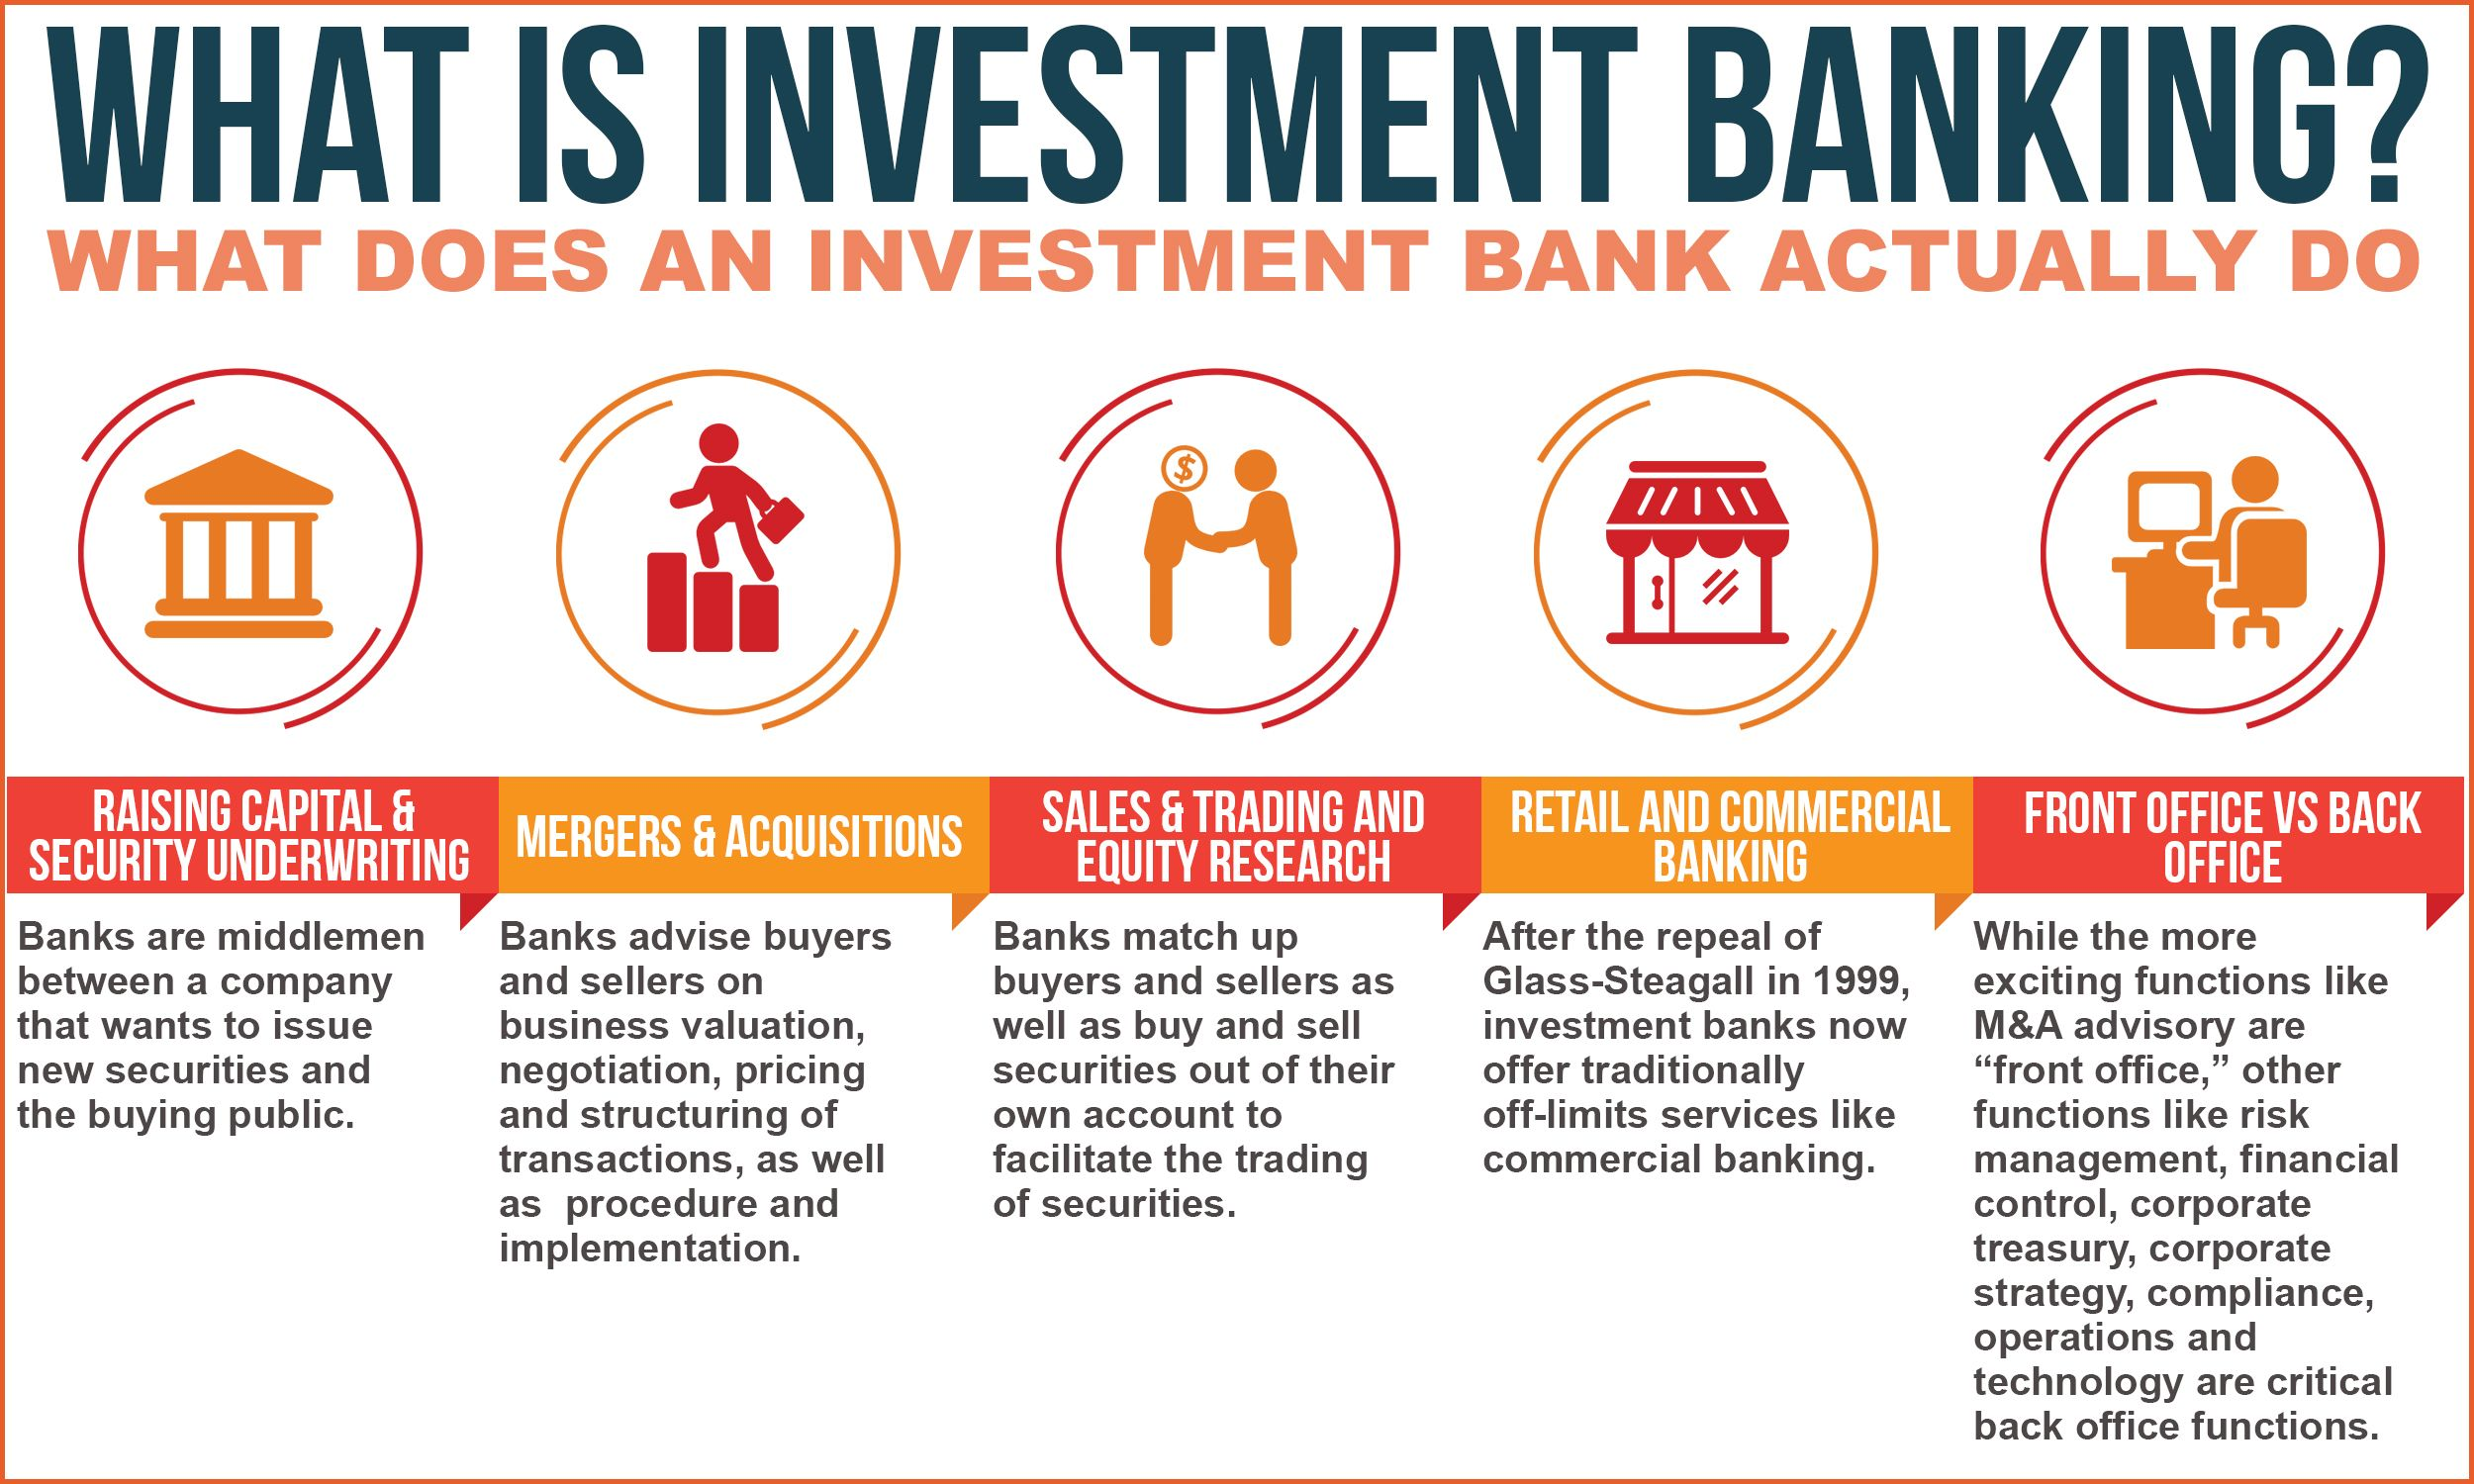 thesis on investment banking This thesis argues that despite its limitations as a small nation and the paucity of its oil reserves, bahrain punched well above its weight due to its open economy and foreign direct investment.